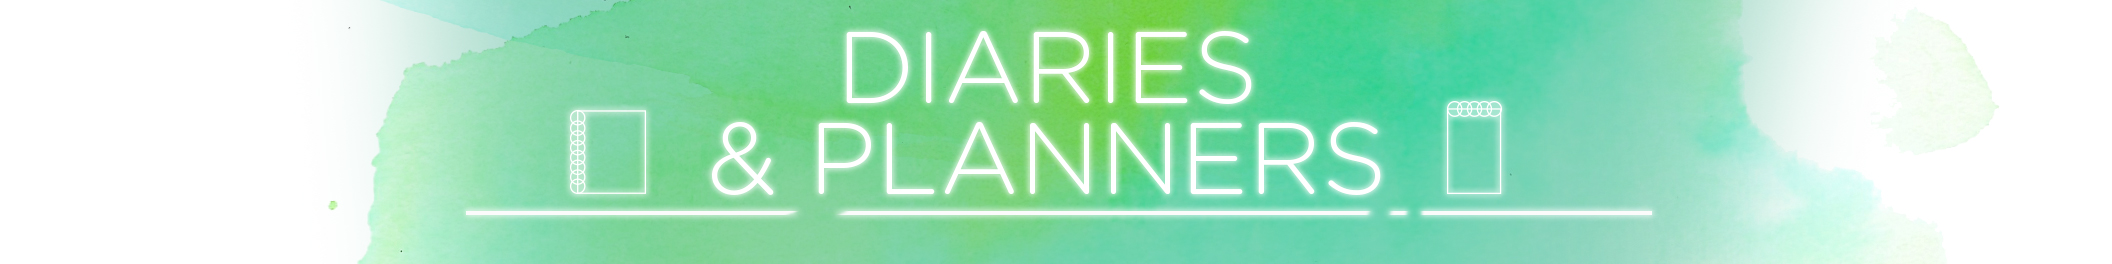 Diaries and planners category header 2112x264